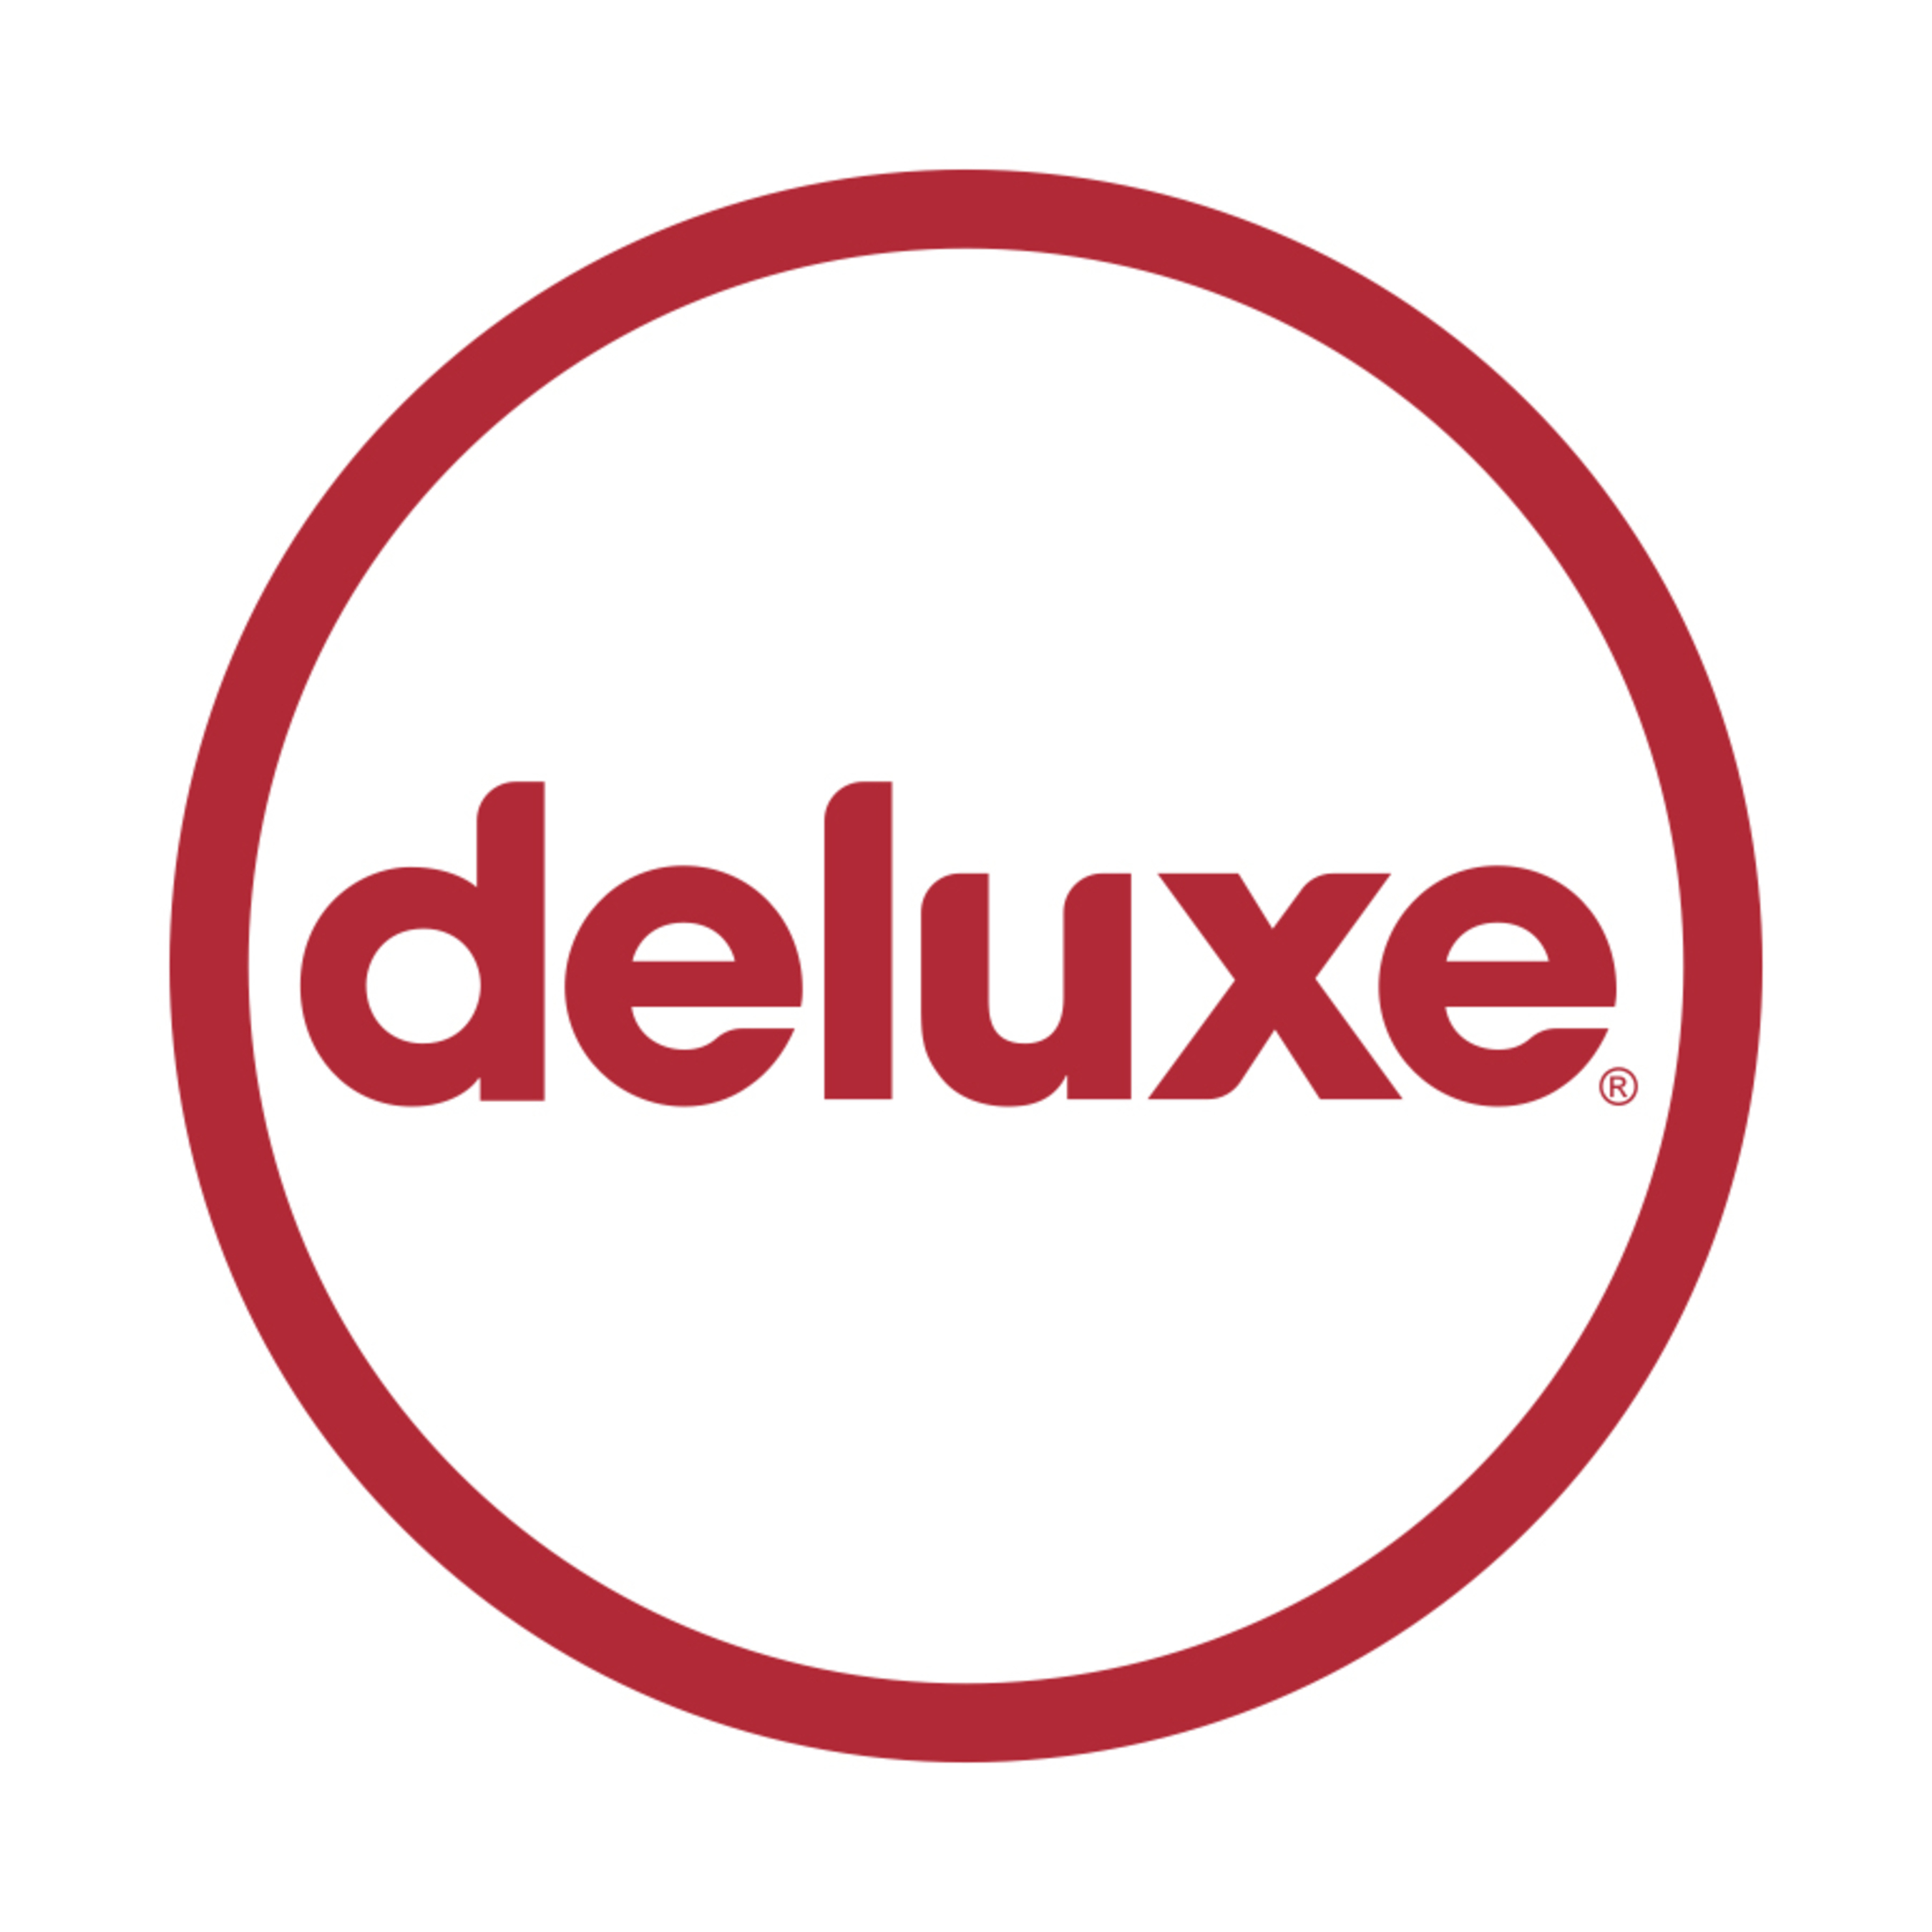 Deluxe Entertainment Services Group Inc. is a global leader in media and entertainment services for film, video  ...